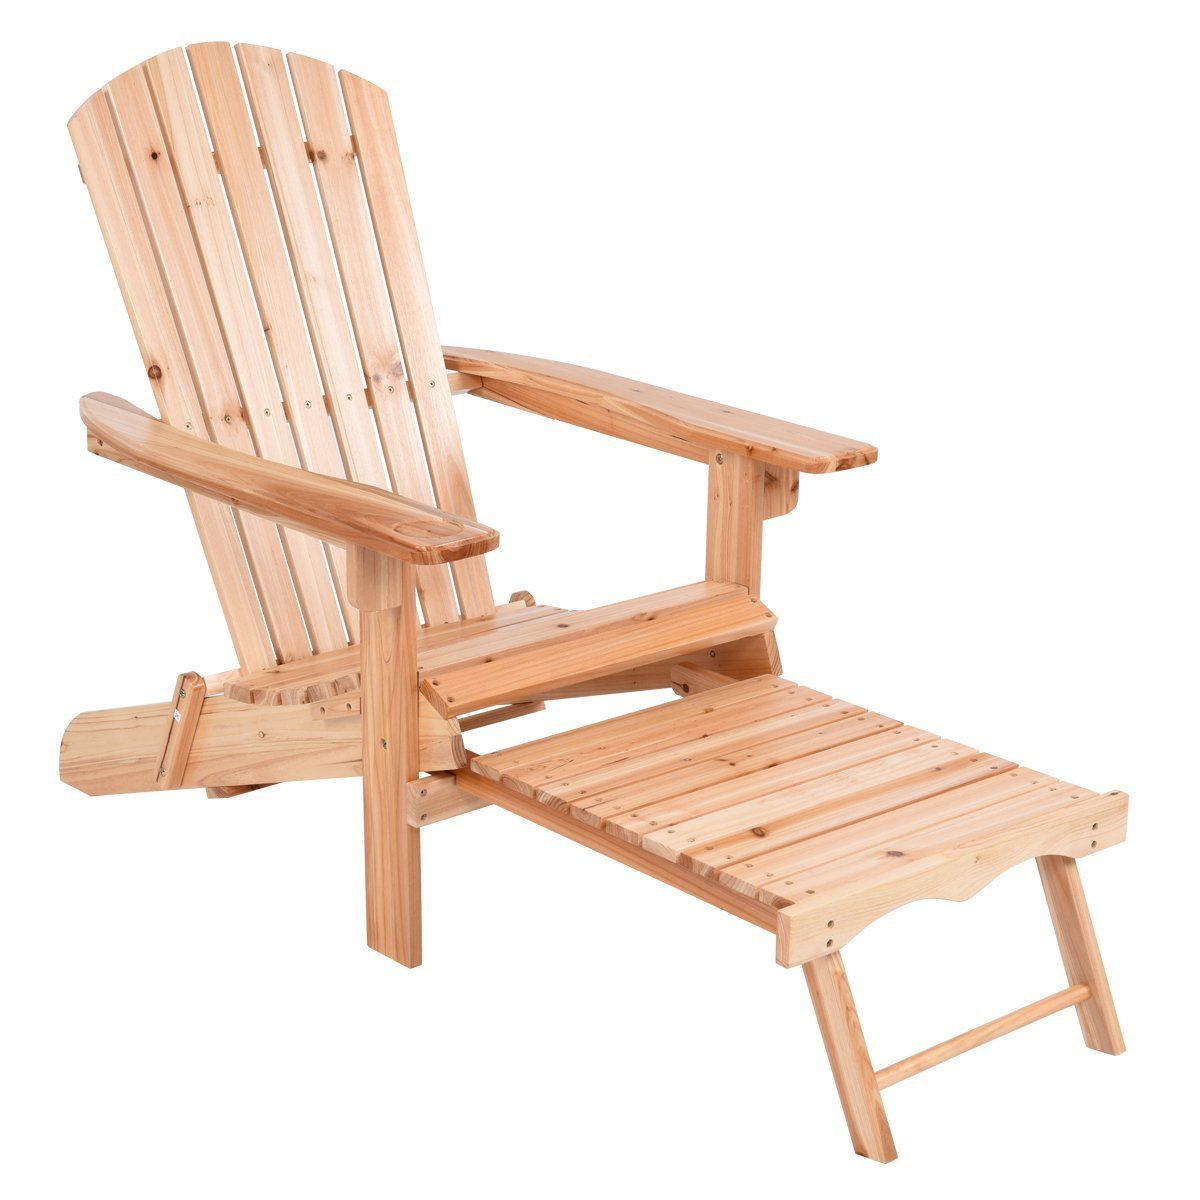 Giantex Foldable Adirondack Wood Chair With Pull-Out Footrest Patio Deck Outdoor, Natural